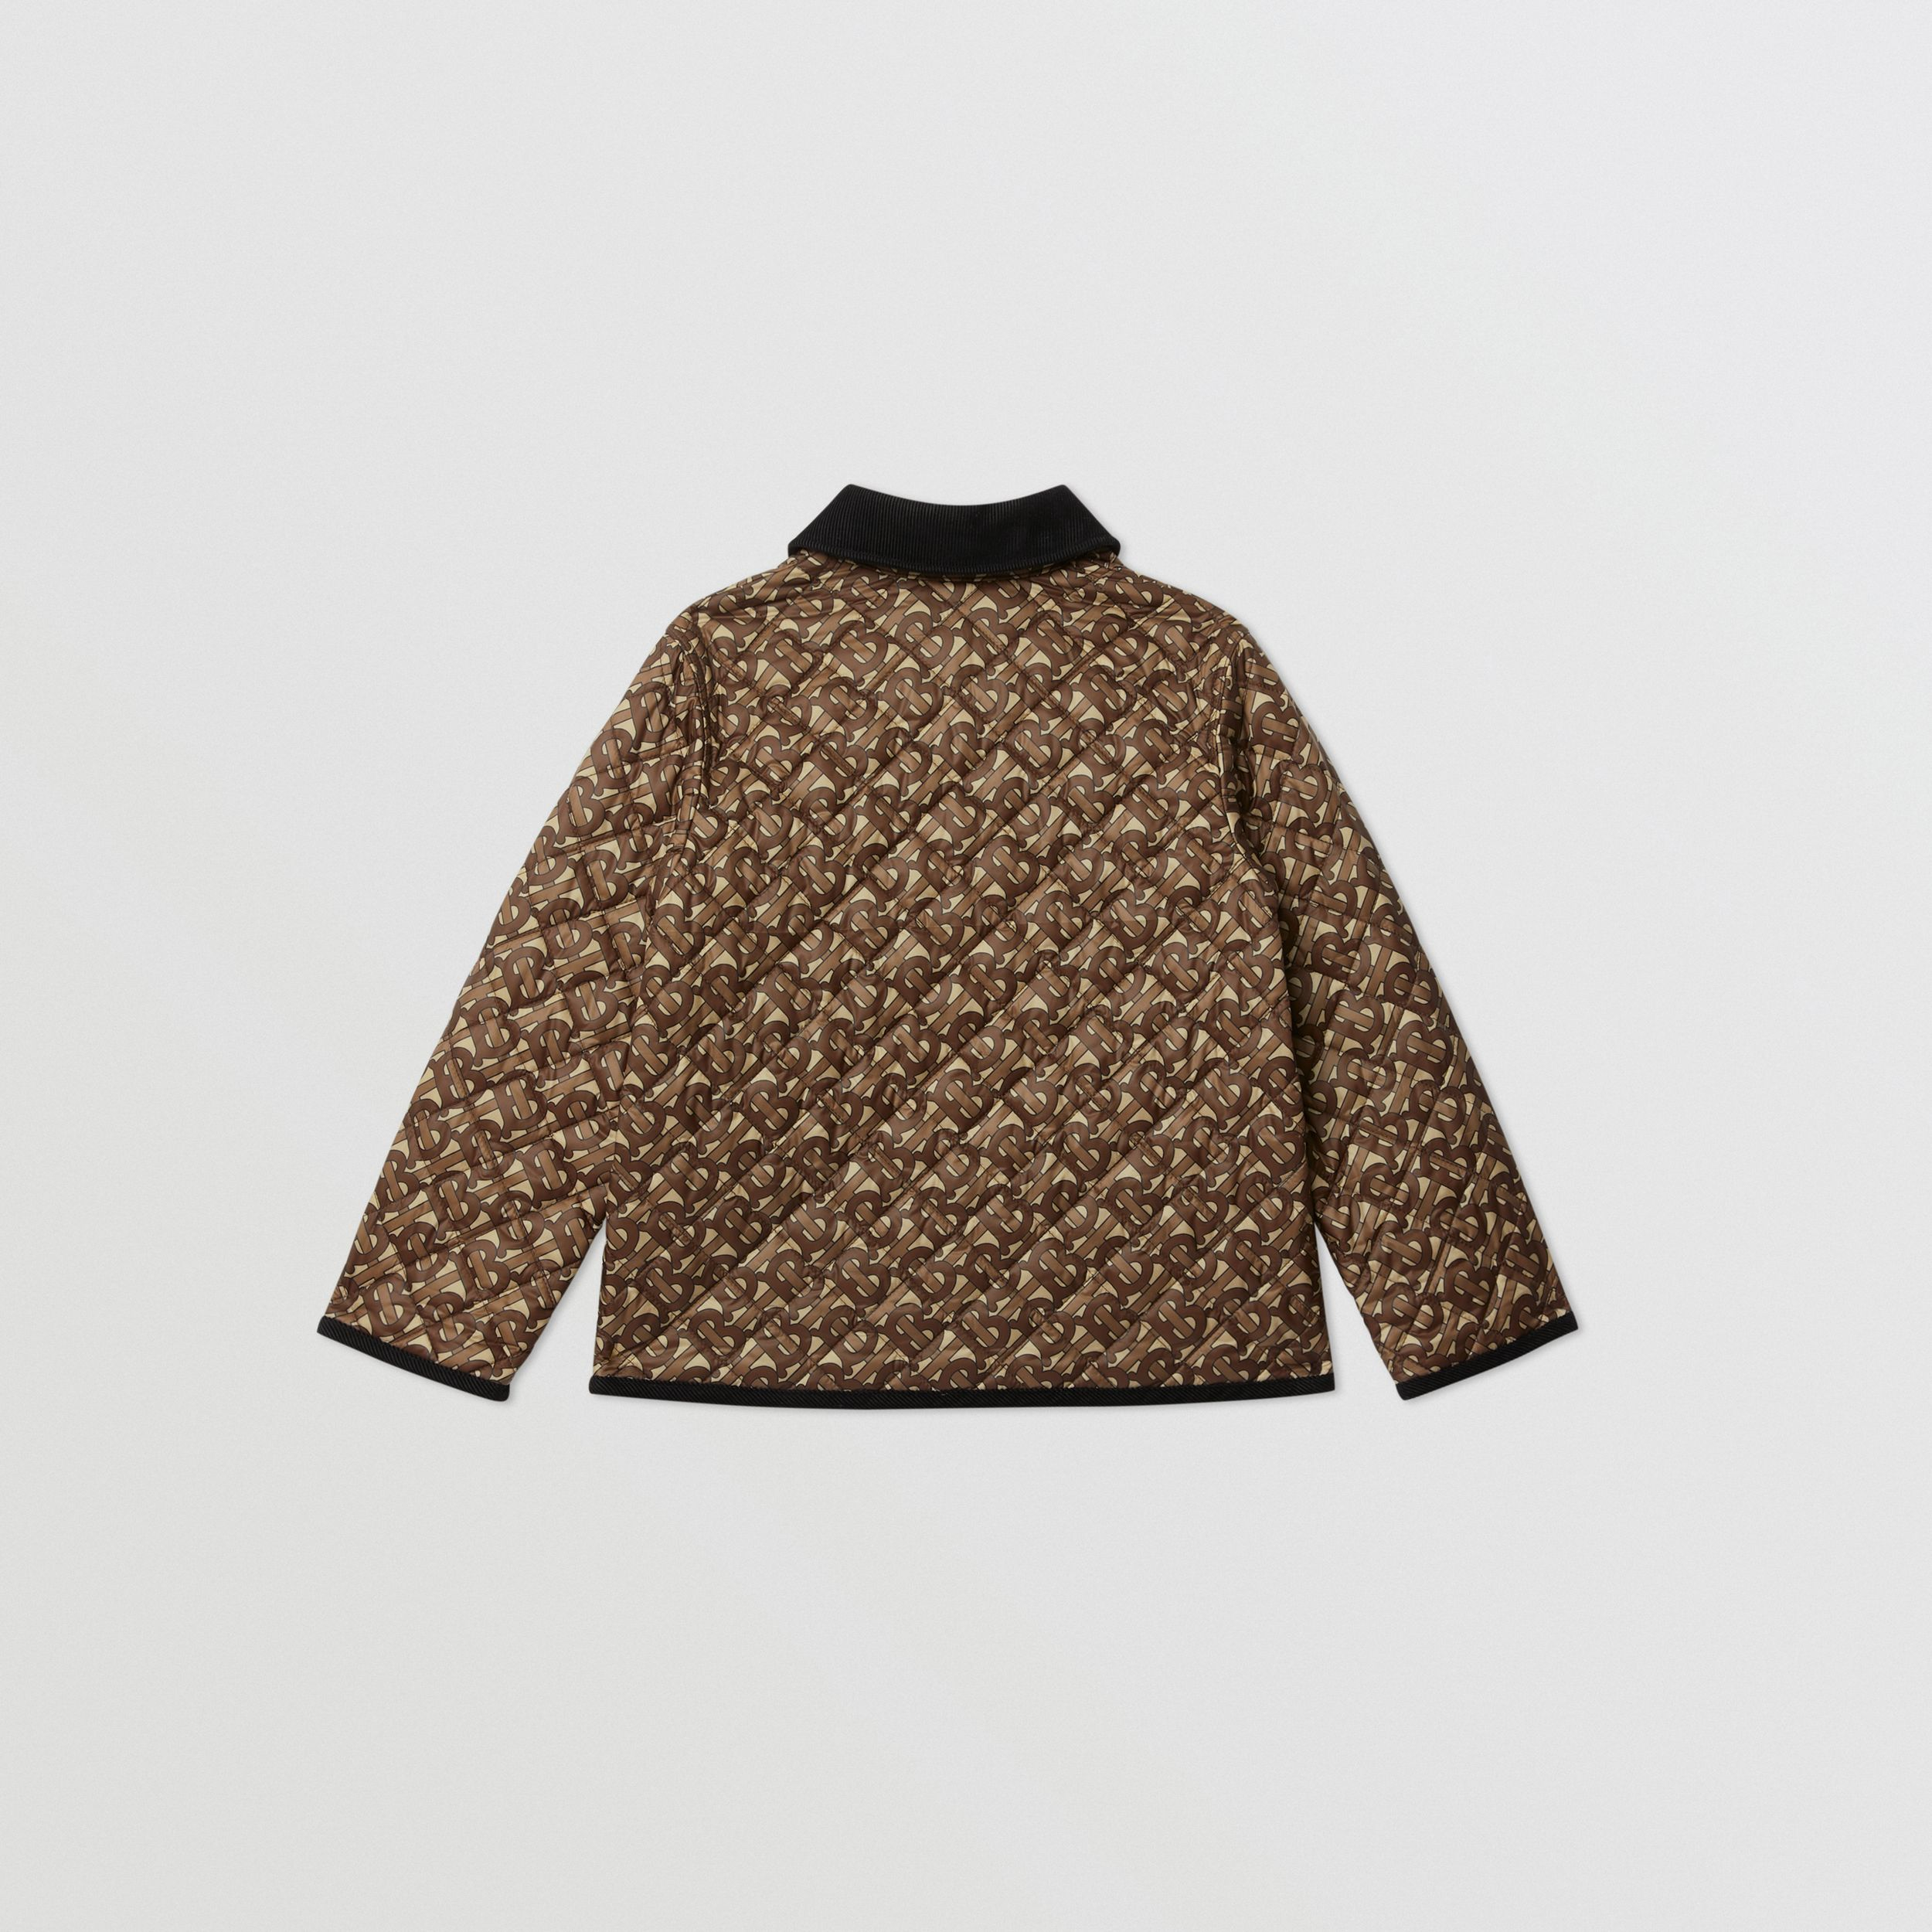 Monogram Print Diamond Quilted Jacket in Bridle Brown | Burberry - 4